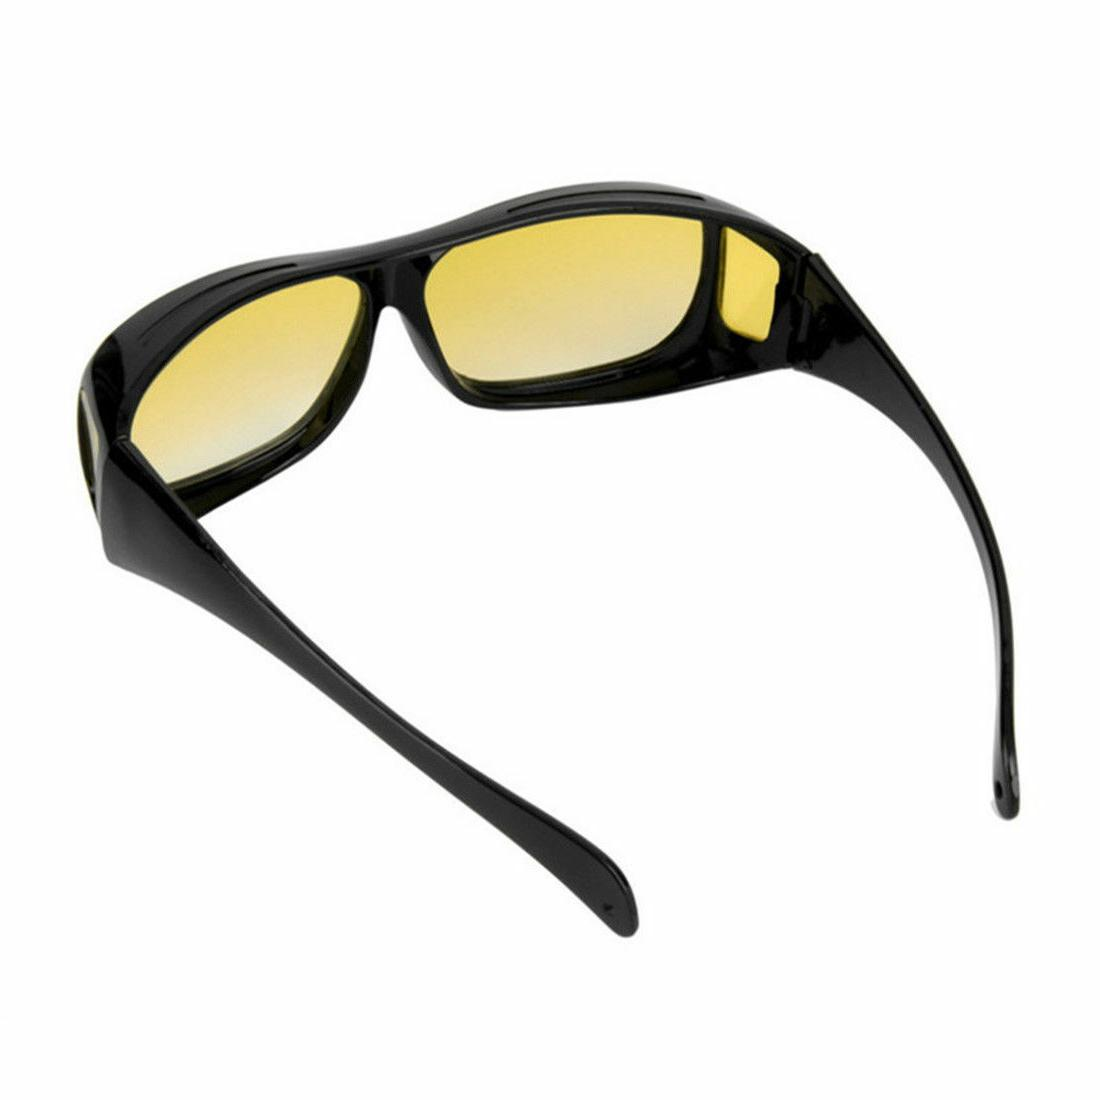 2 Day Night Wraparound Fits OVER Glasses Seen TV